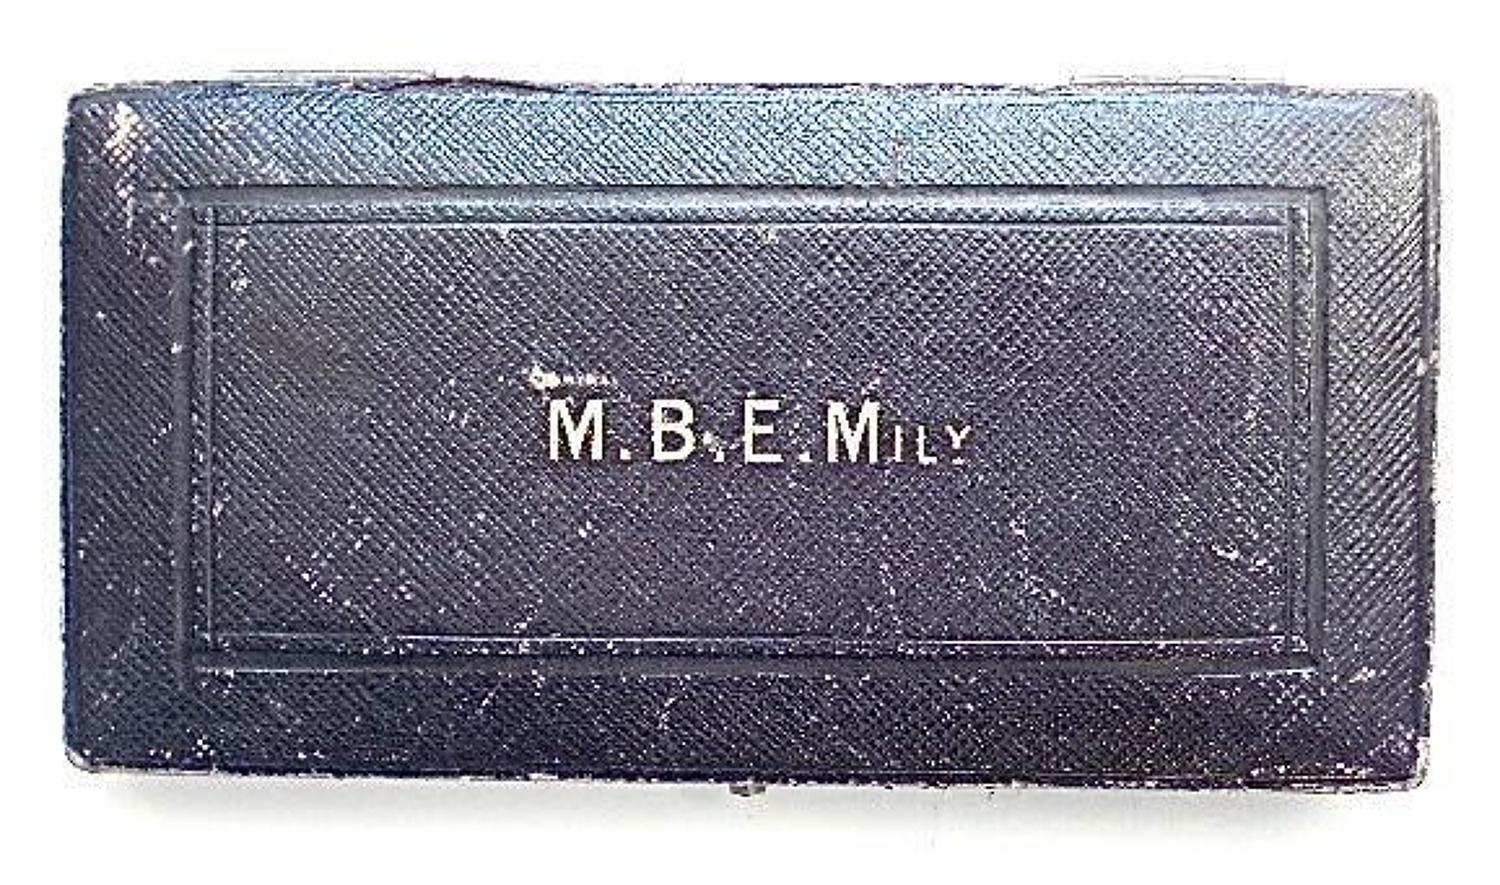 WW1 Period Case for a MBE (Military) Order.